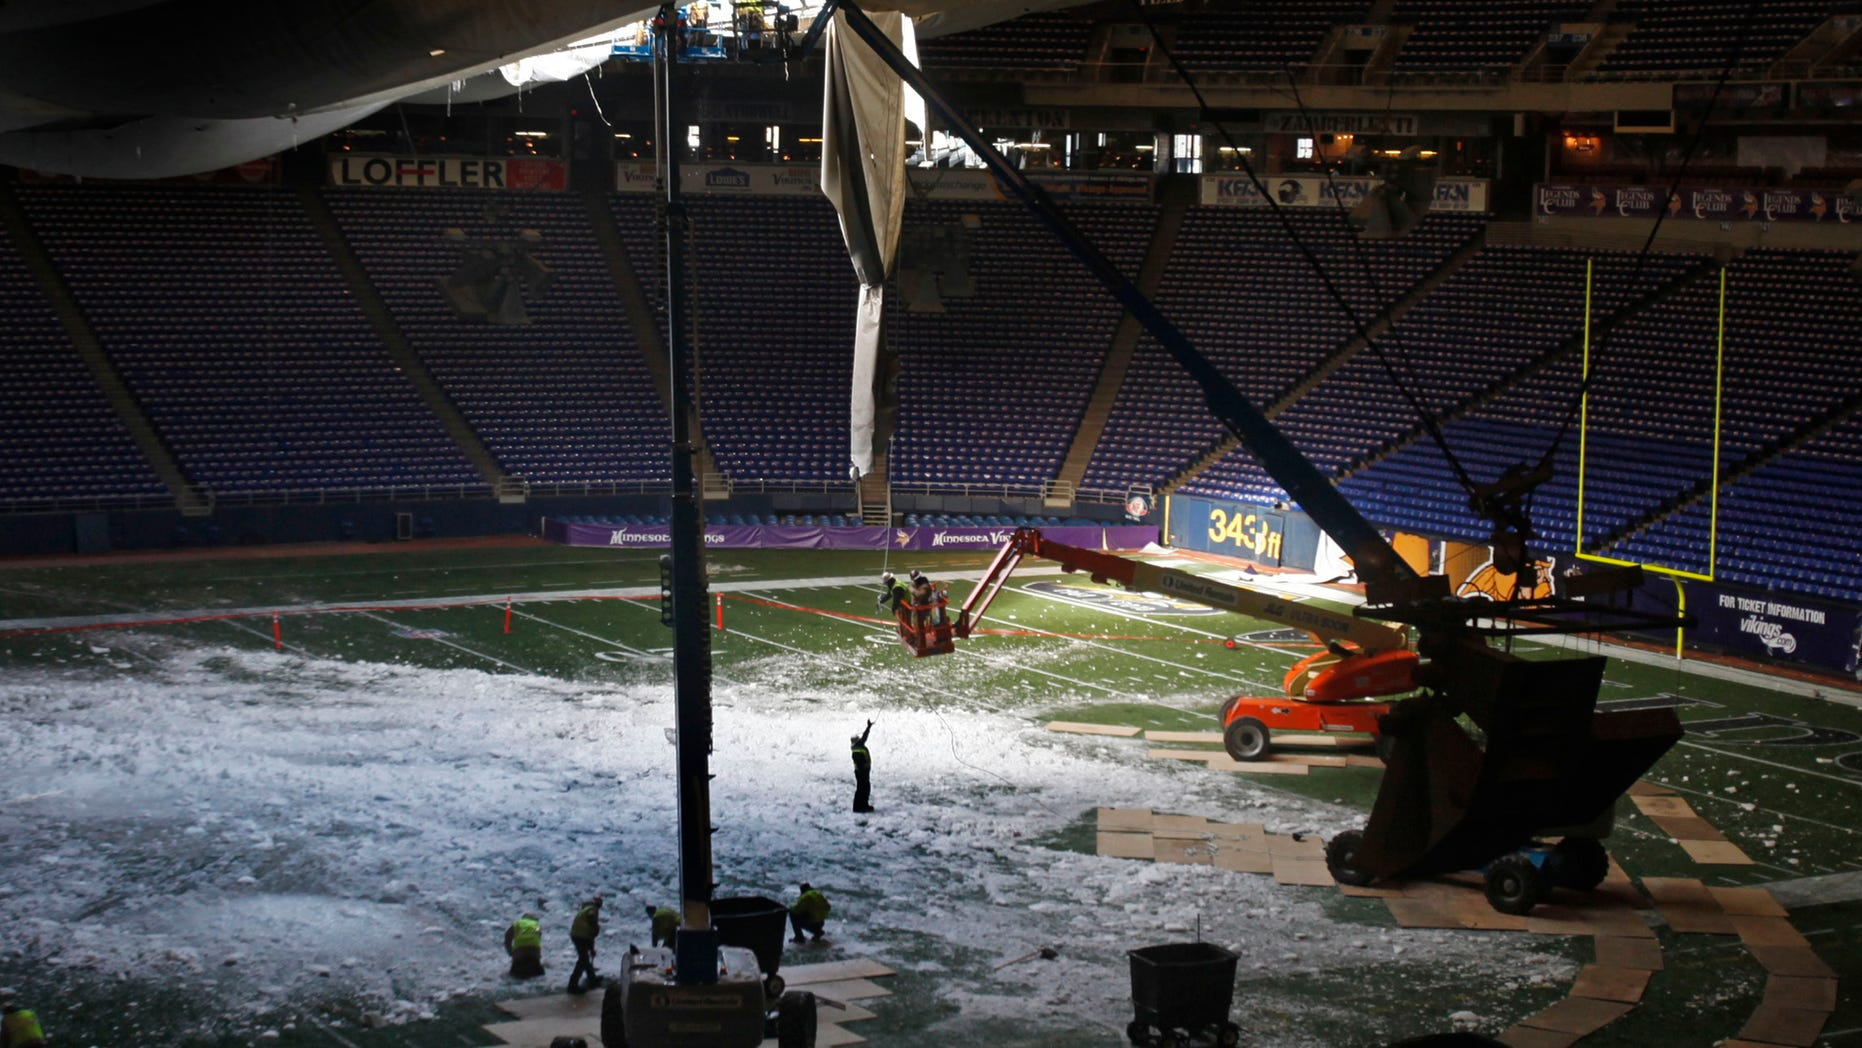 Dec. 14: Workers tend to the torn roof of the Metrodome in Minneapolis.